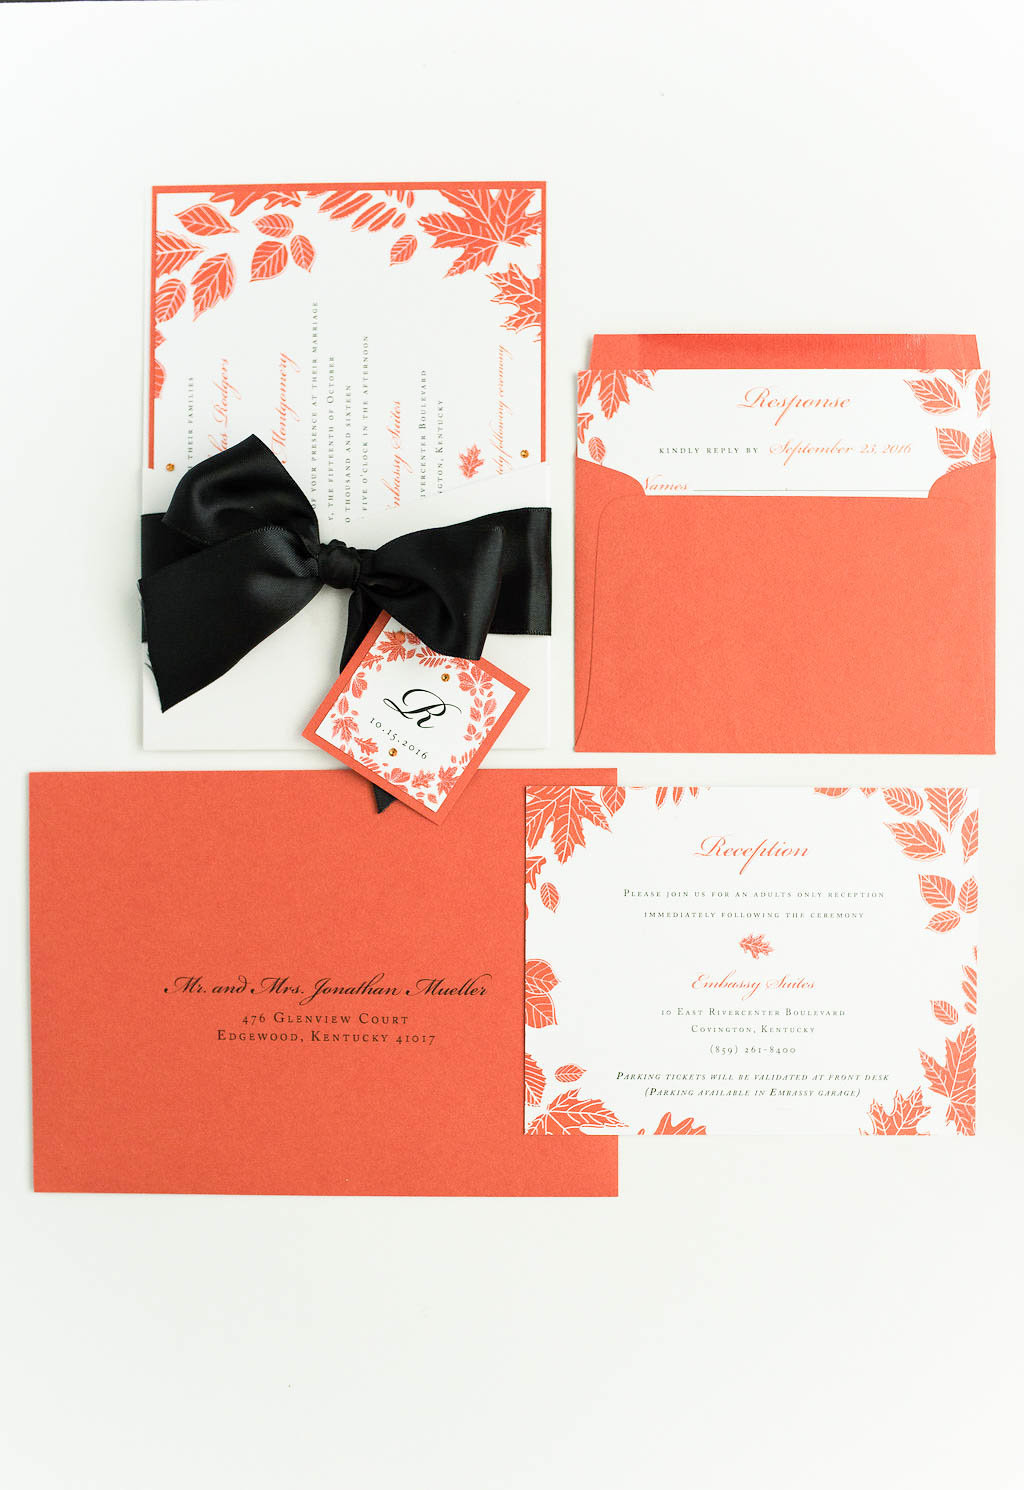 Melissa Arey - Hello Invite Design Studio - Photo -0905